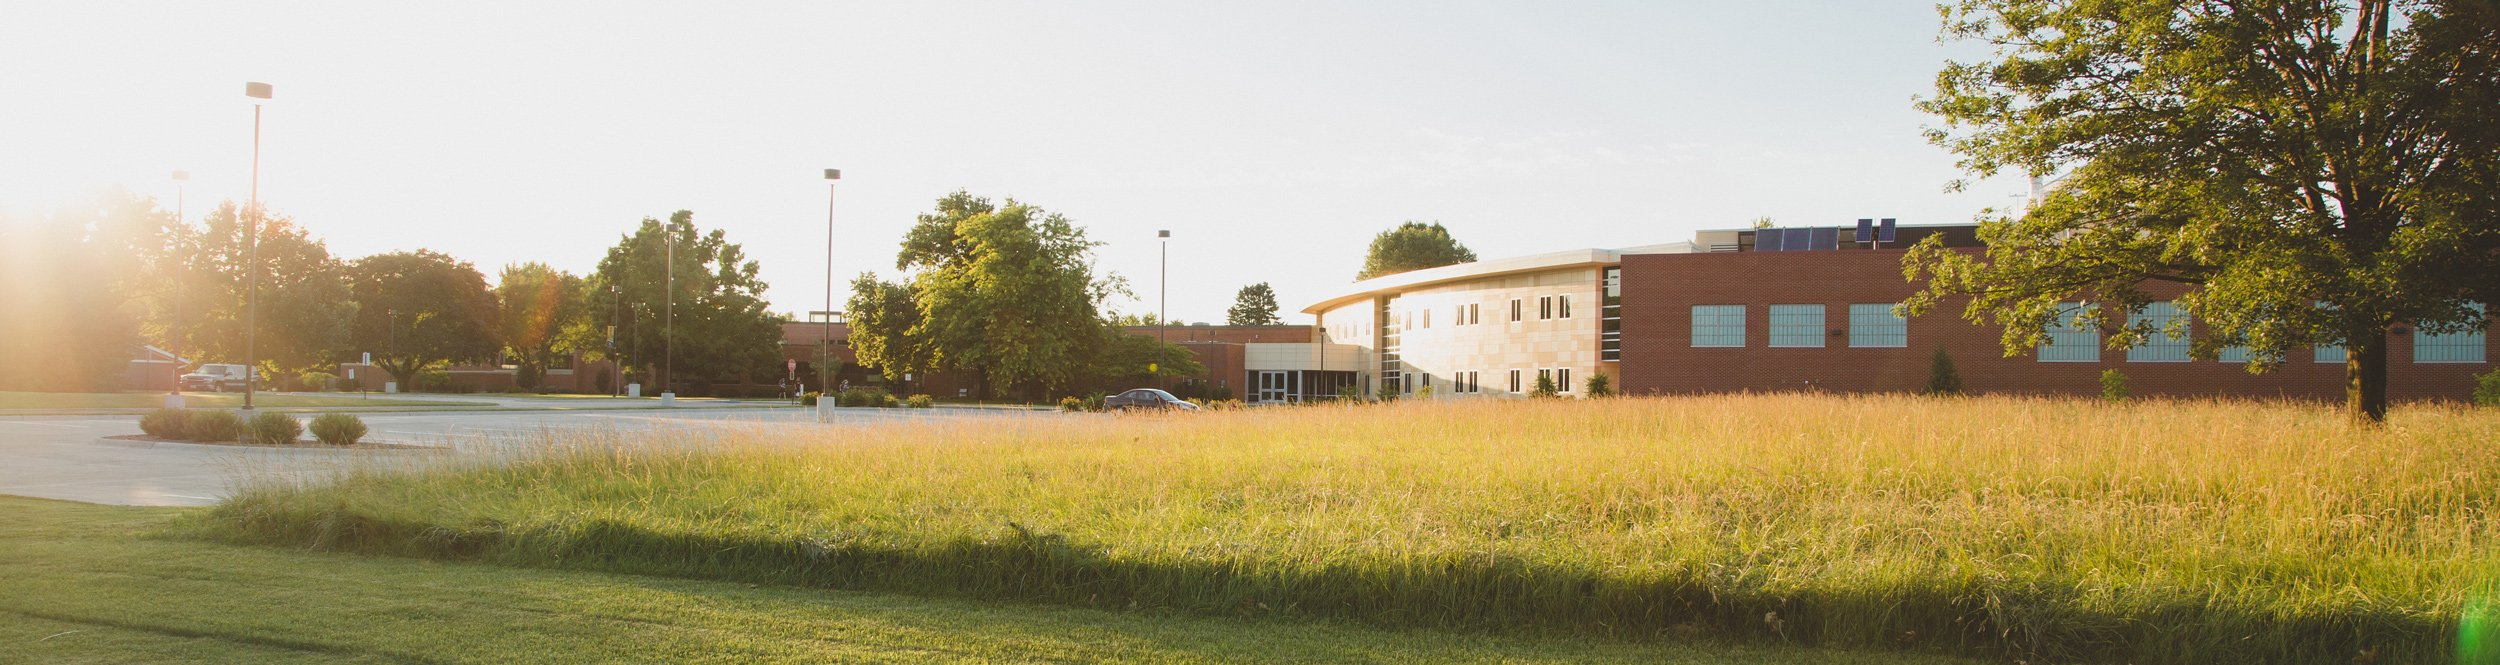 The back of the science building surrounded by green grass.